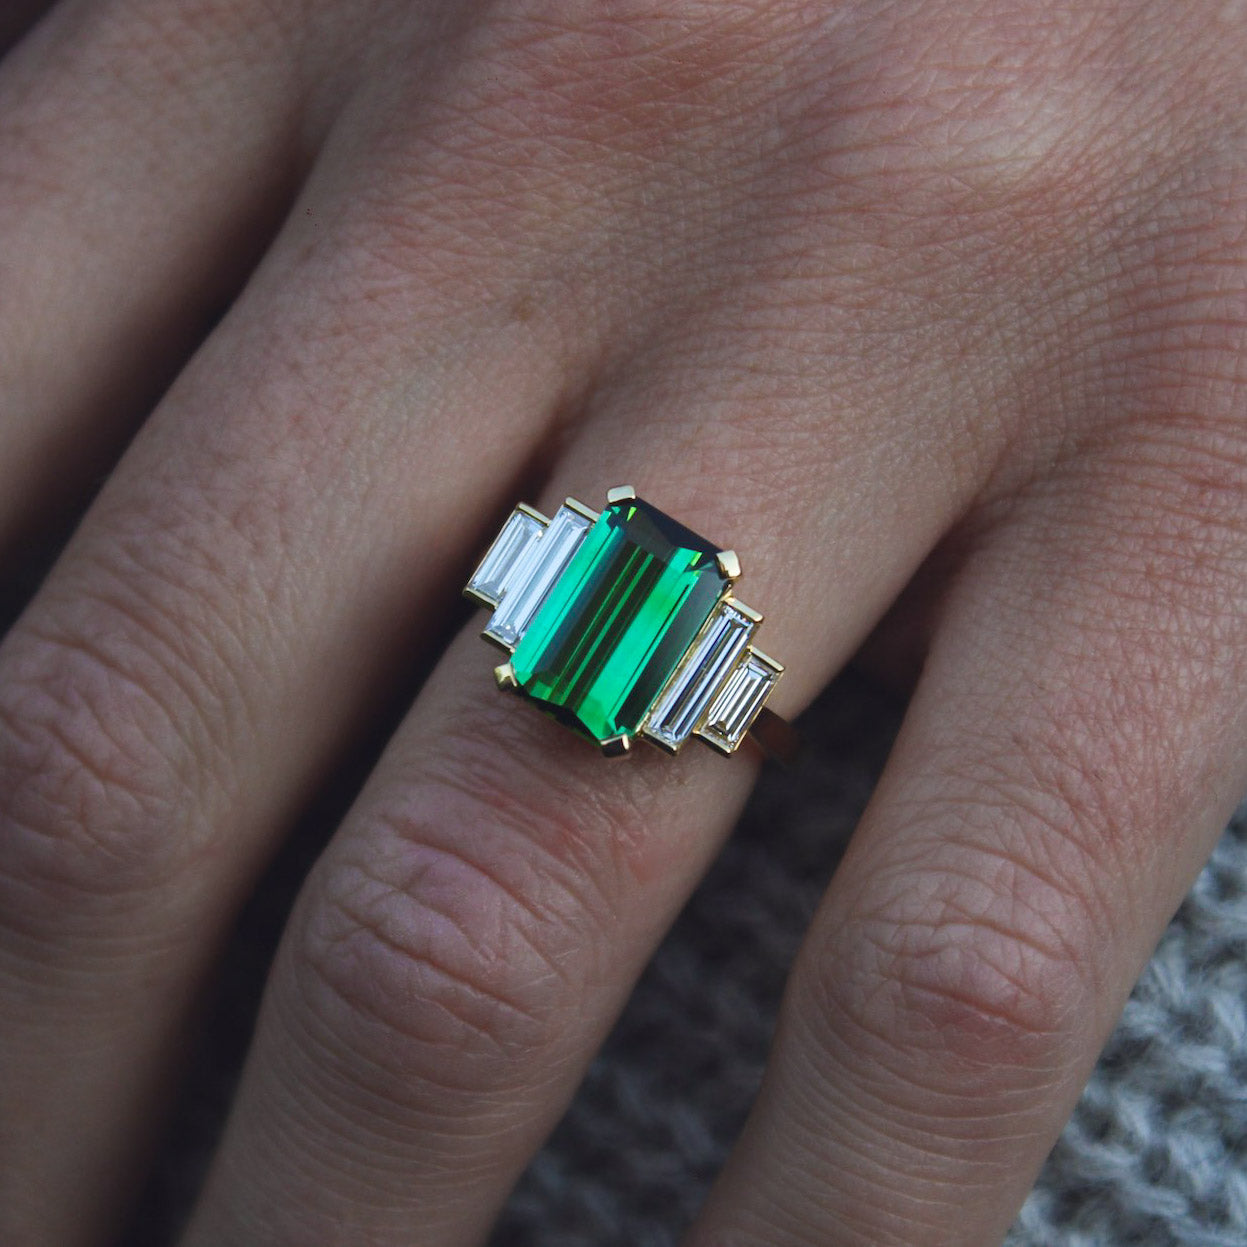 Bespoke tourmaline ring